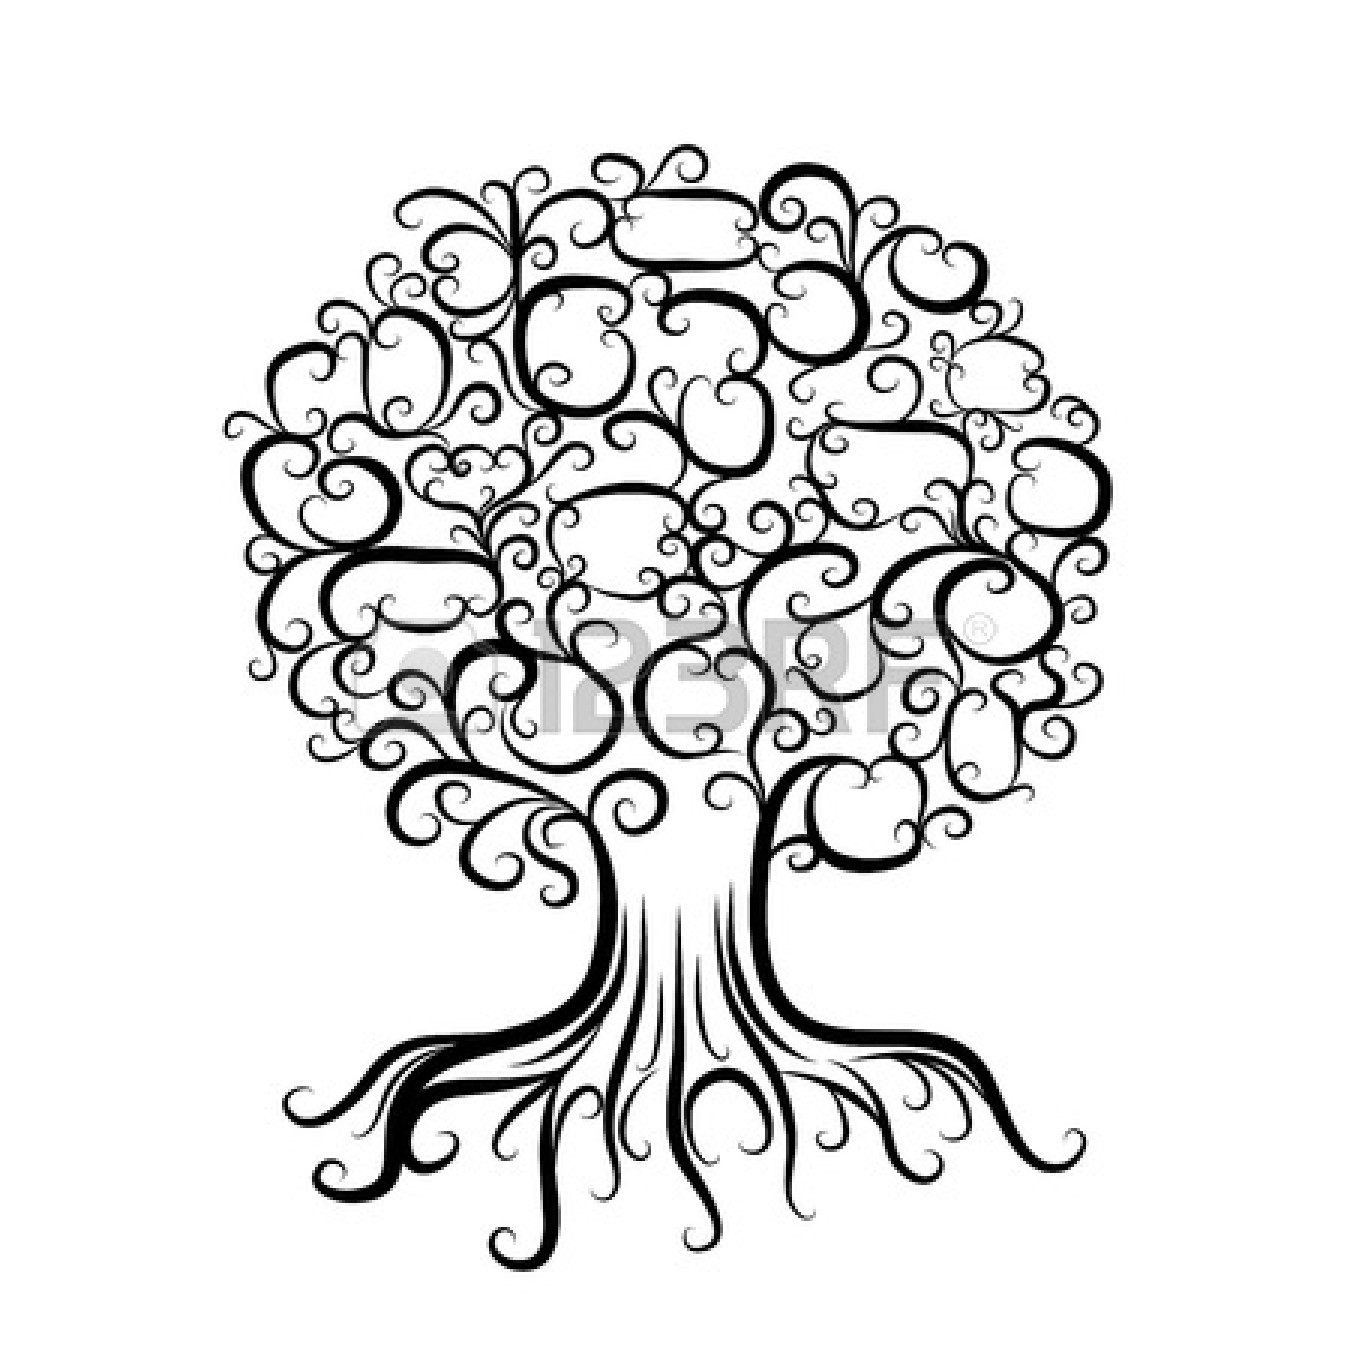 African american roots clipart jpg black and white Family Tree With Roots | Free download best Family Tree With Roots ... jpg black and white